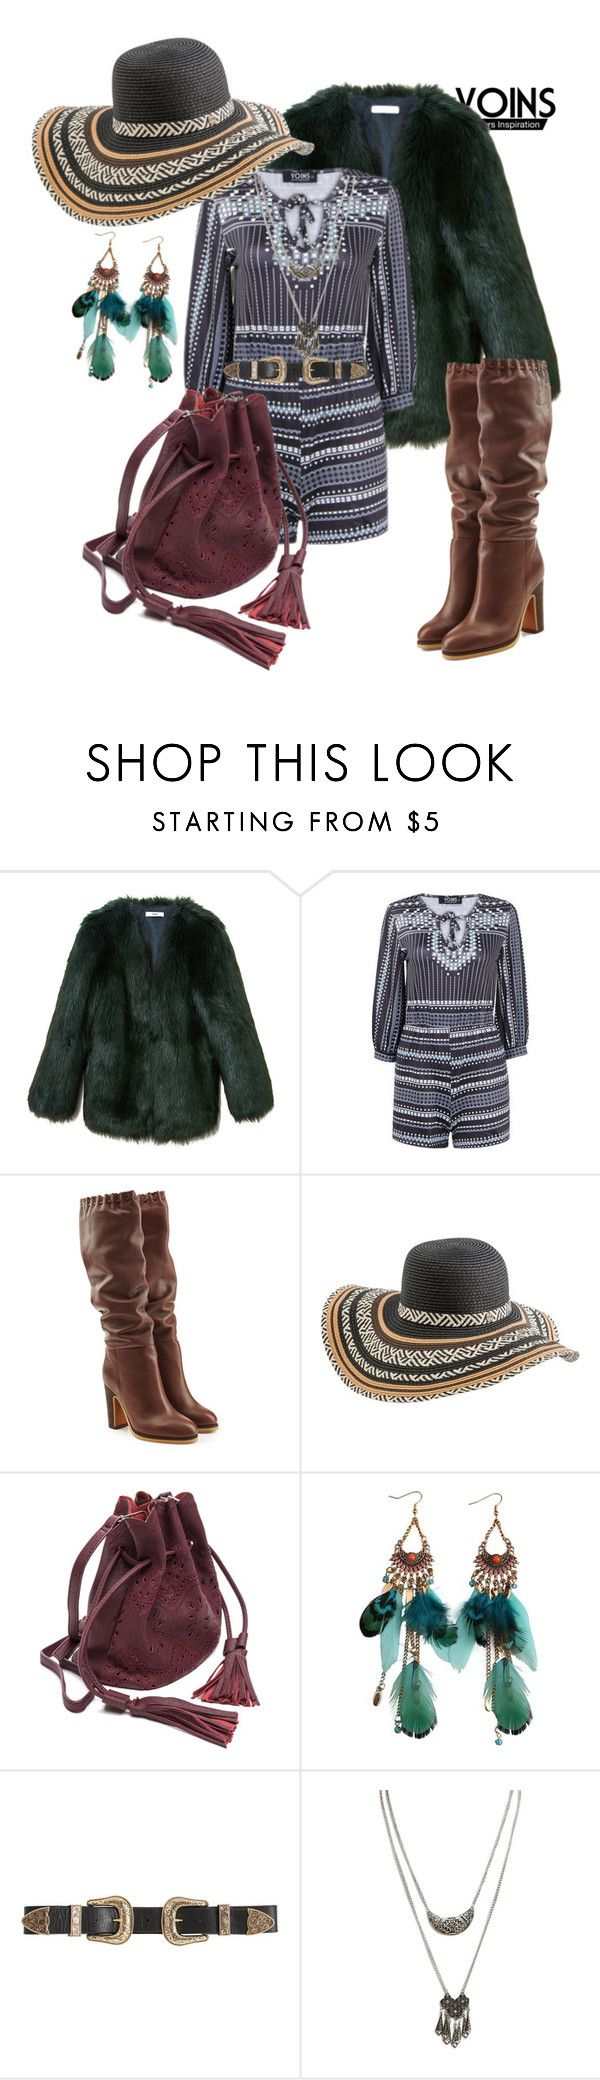 """Boho"" by velvy ❤ liked on Polyvore featuring THP, See by Chloé, Rip Curl, B-Low the Belt and Wet Seal"